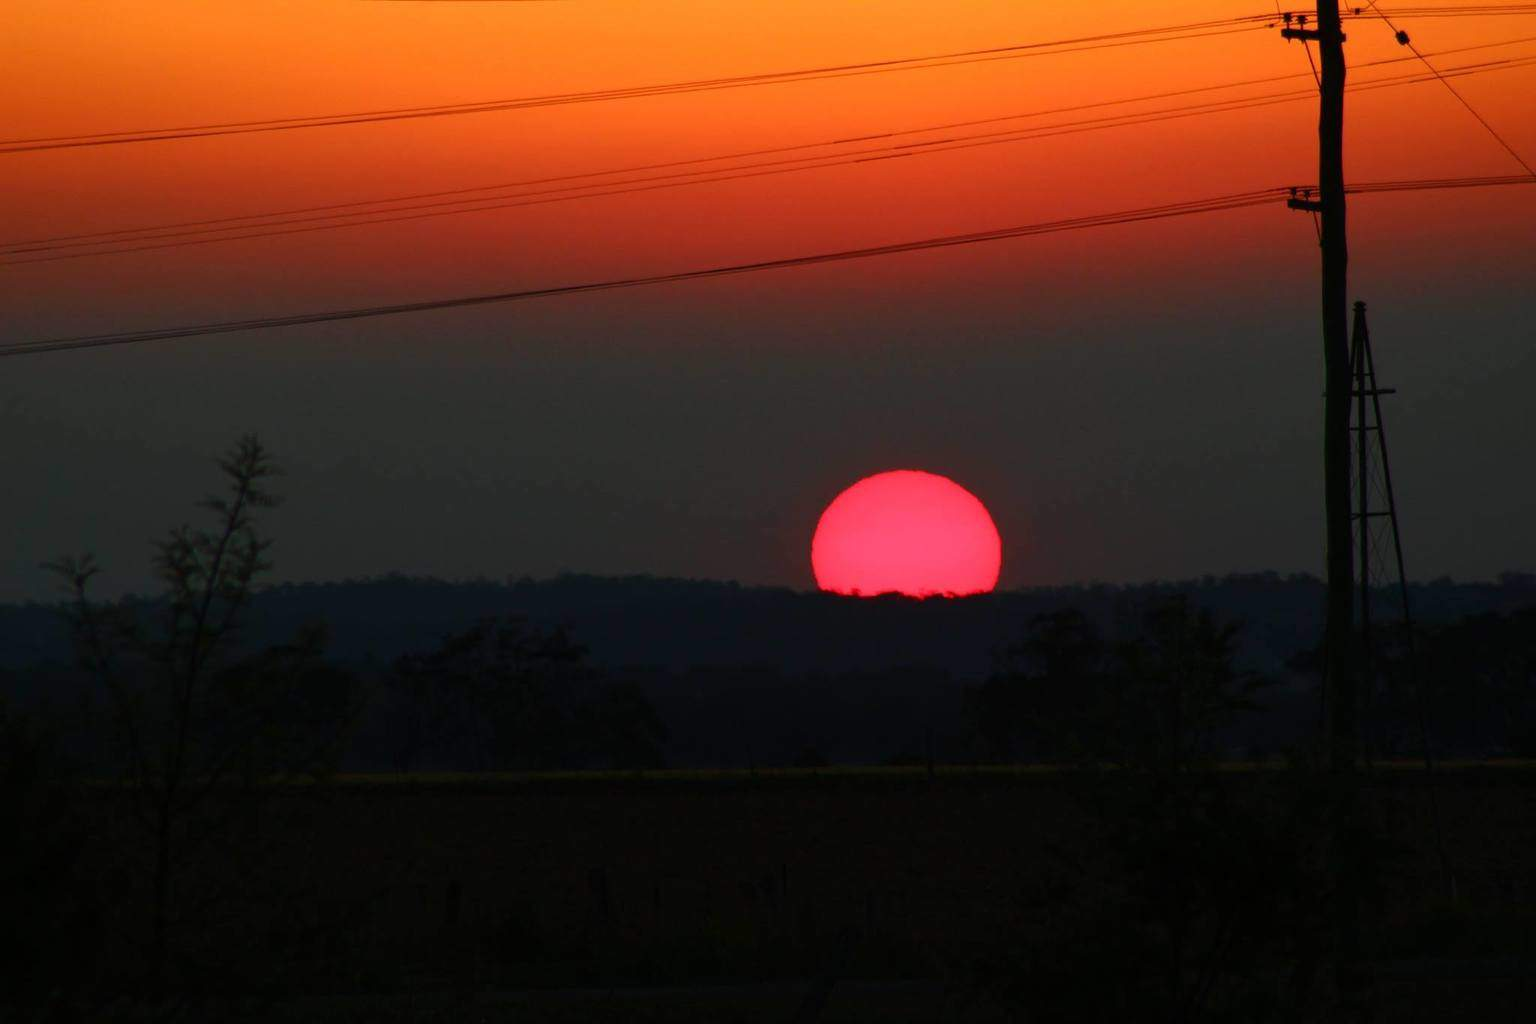 Just captured this gorgeous sunset near Warwick QLD Australia. The sun looked pink